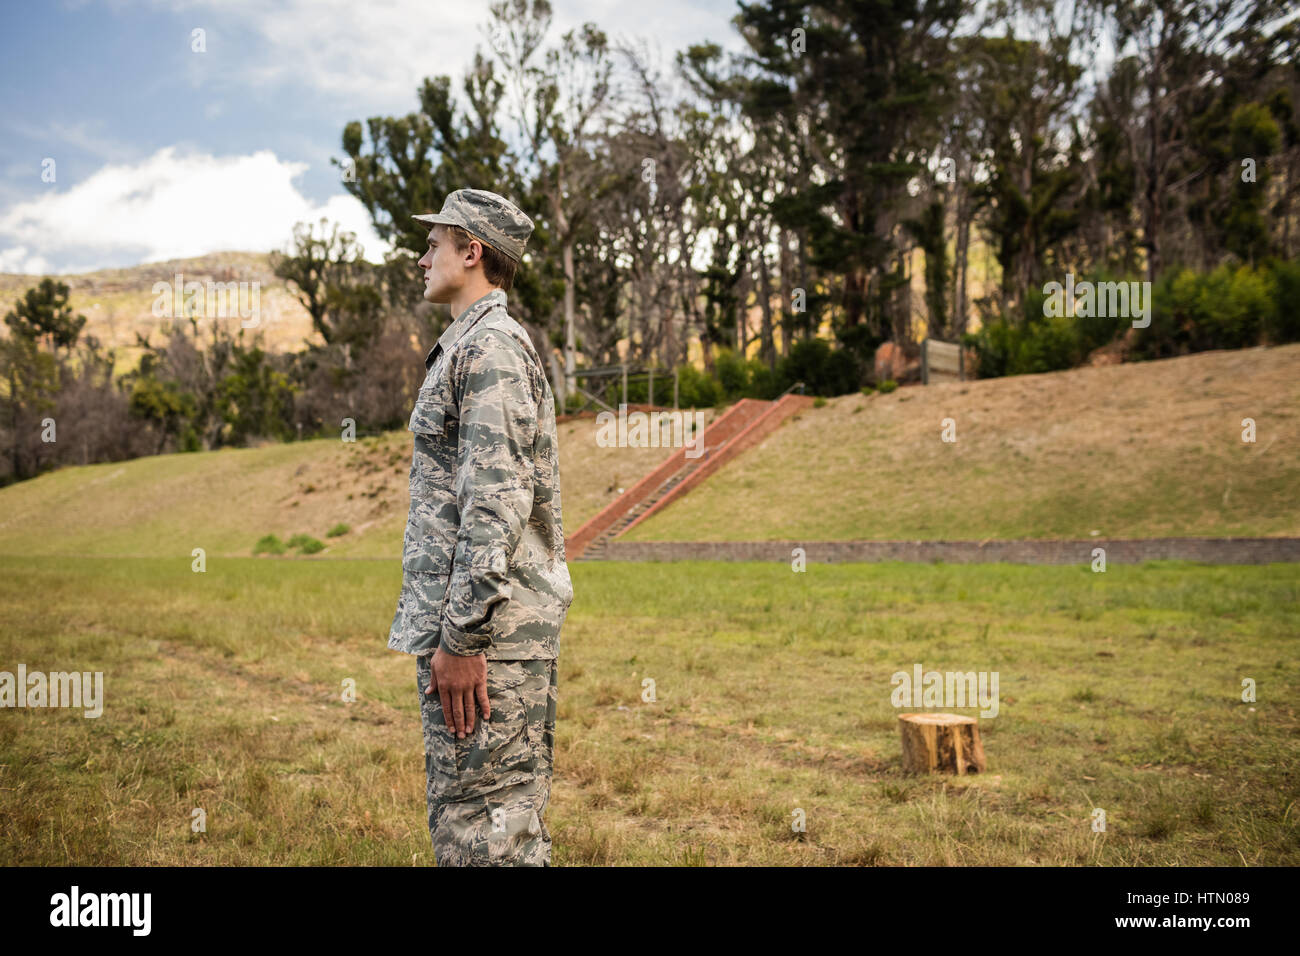 Military soldier standing at attention posture in boot camp - Stock Image